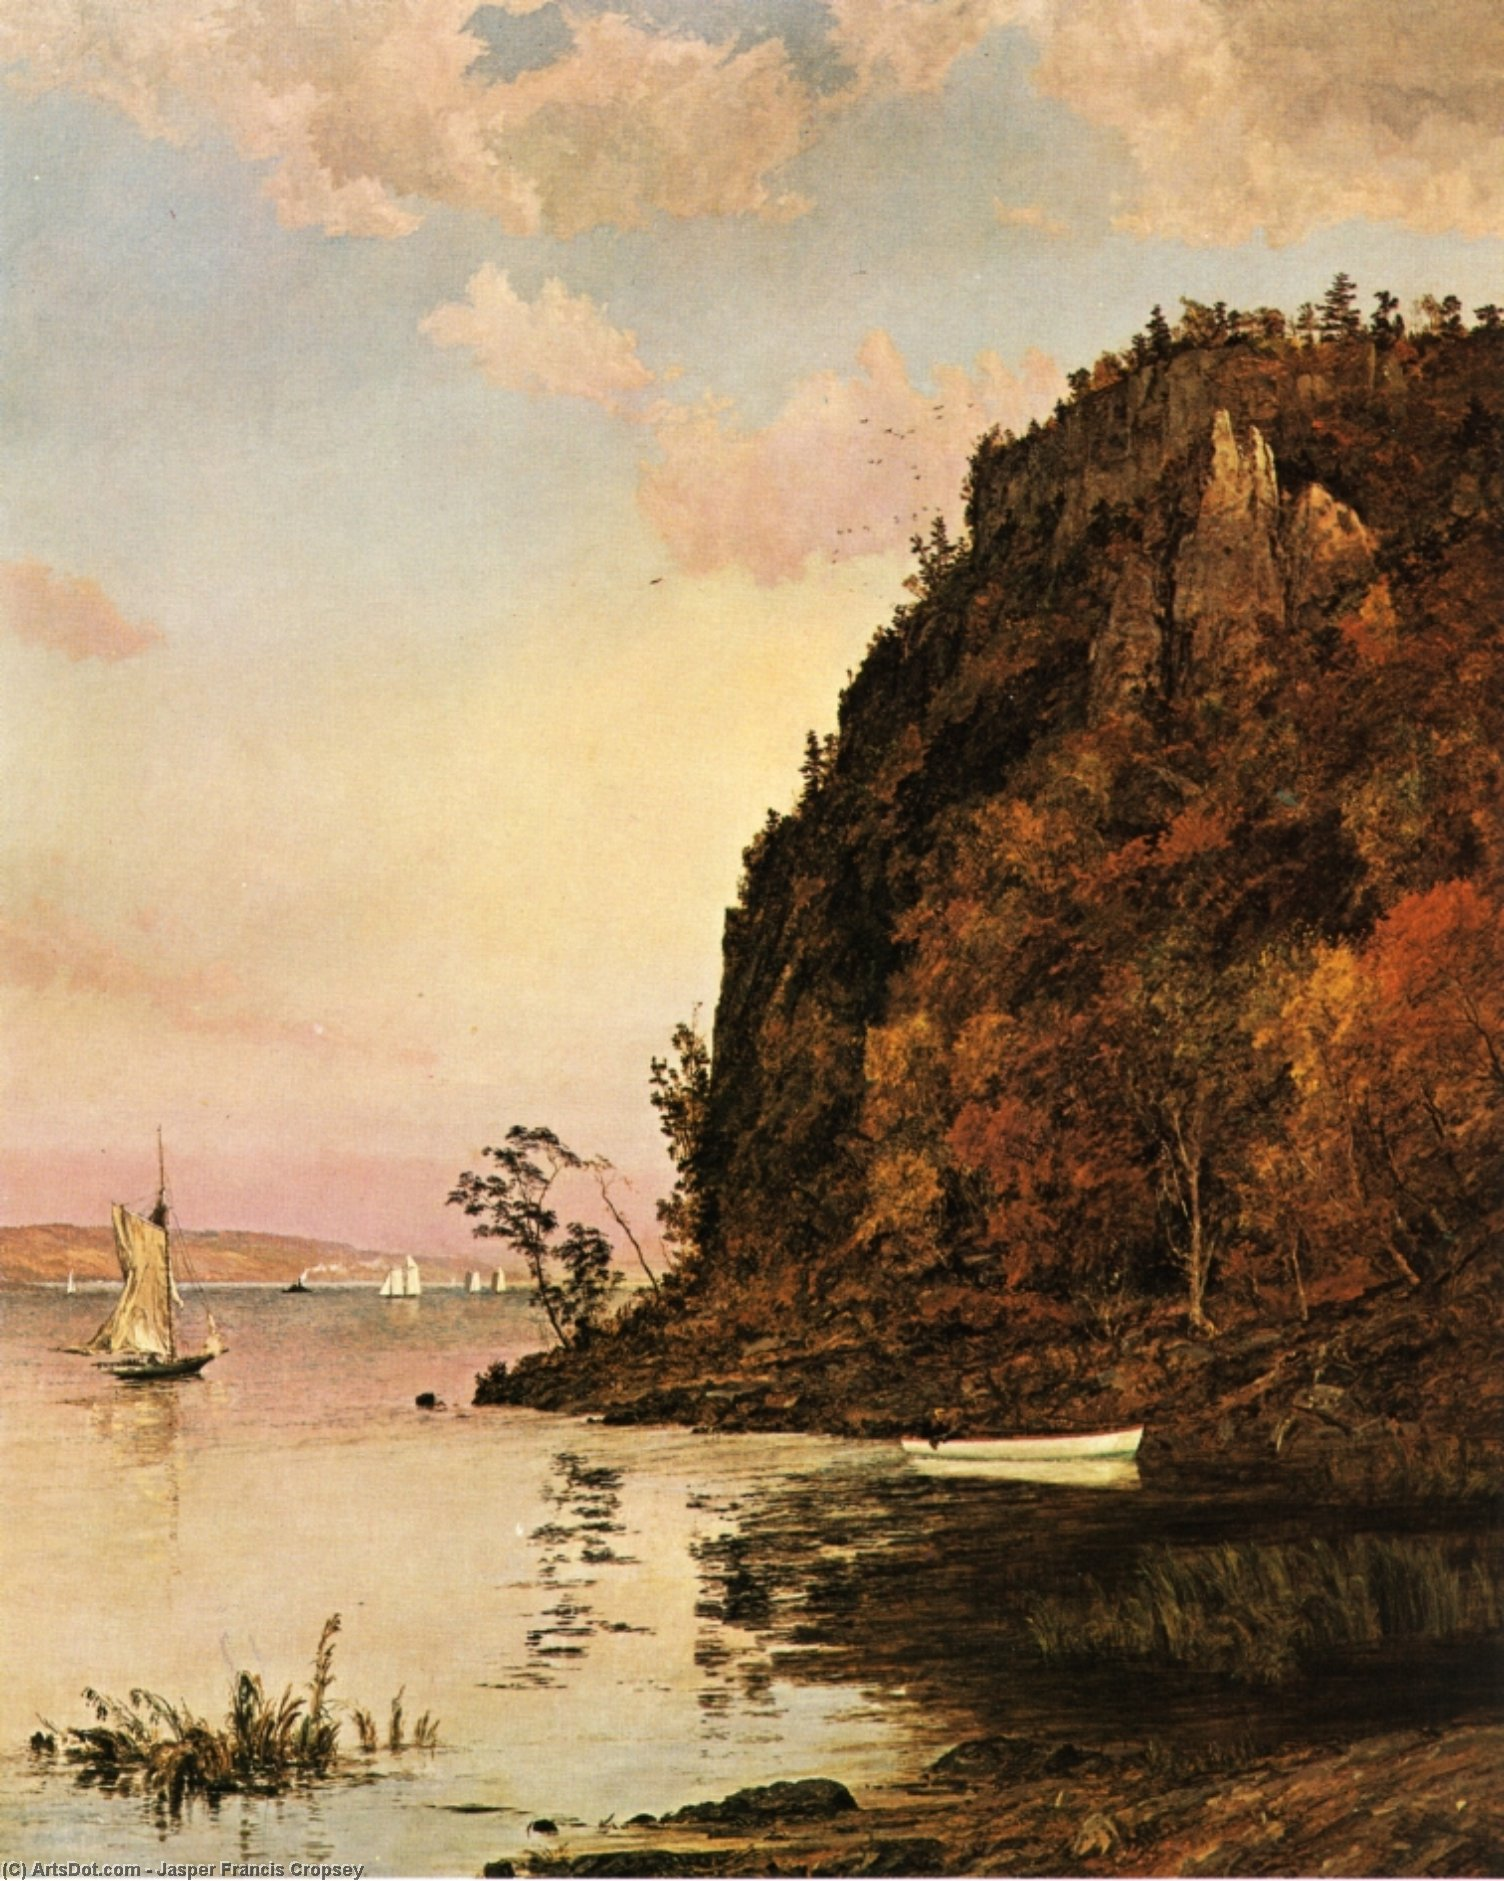 Under the Palisades, in October, 1895 by Jasper Francis Cropsey (1823-1900, United States) | ArtsDot.com